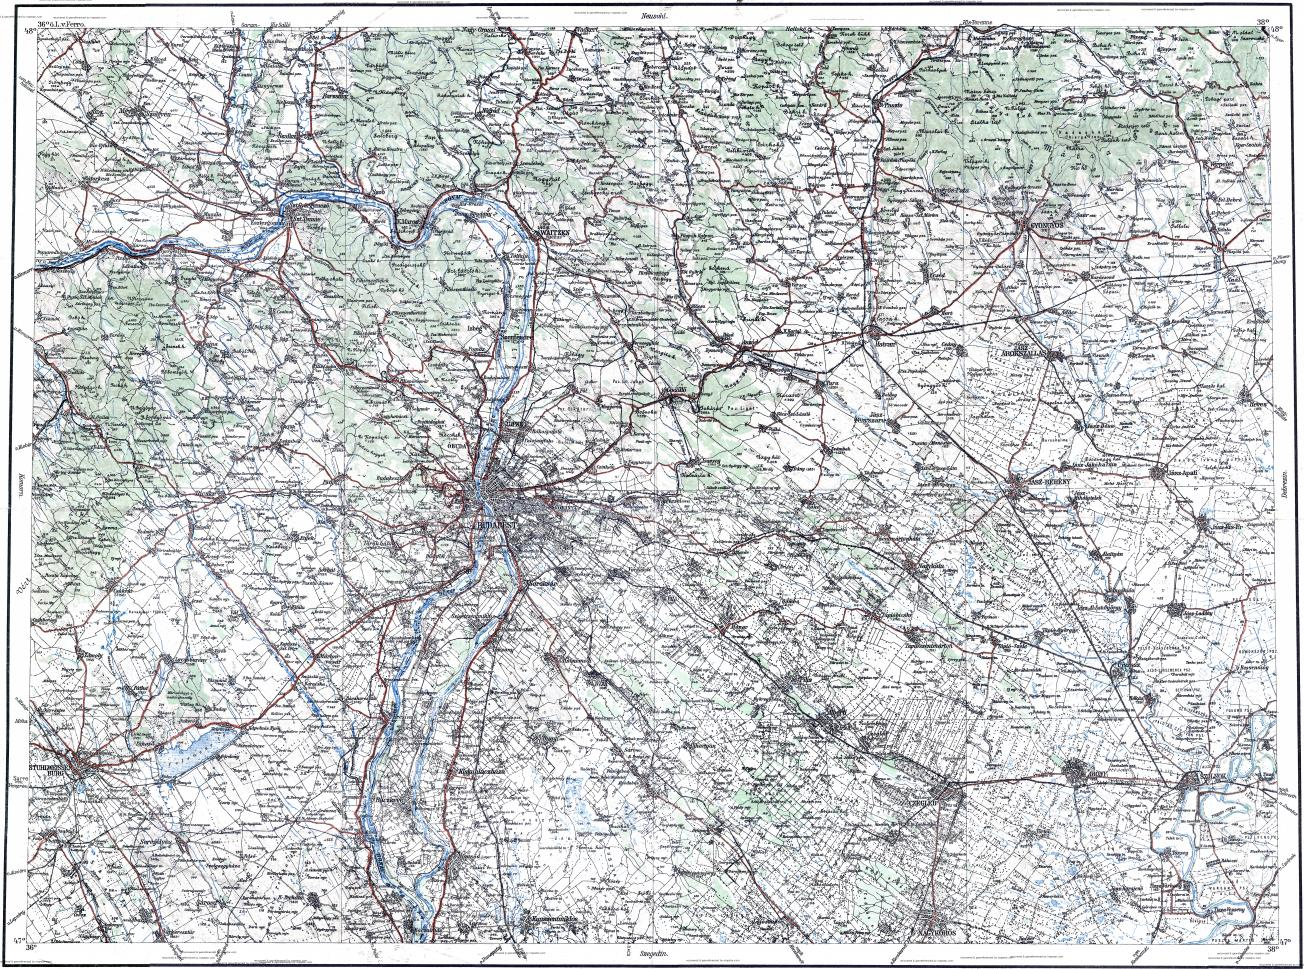 Download topographic map in area of Budapest Szekesfehervar